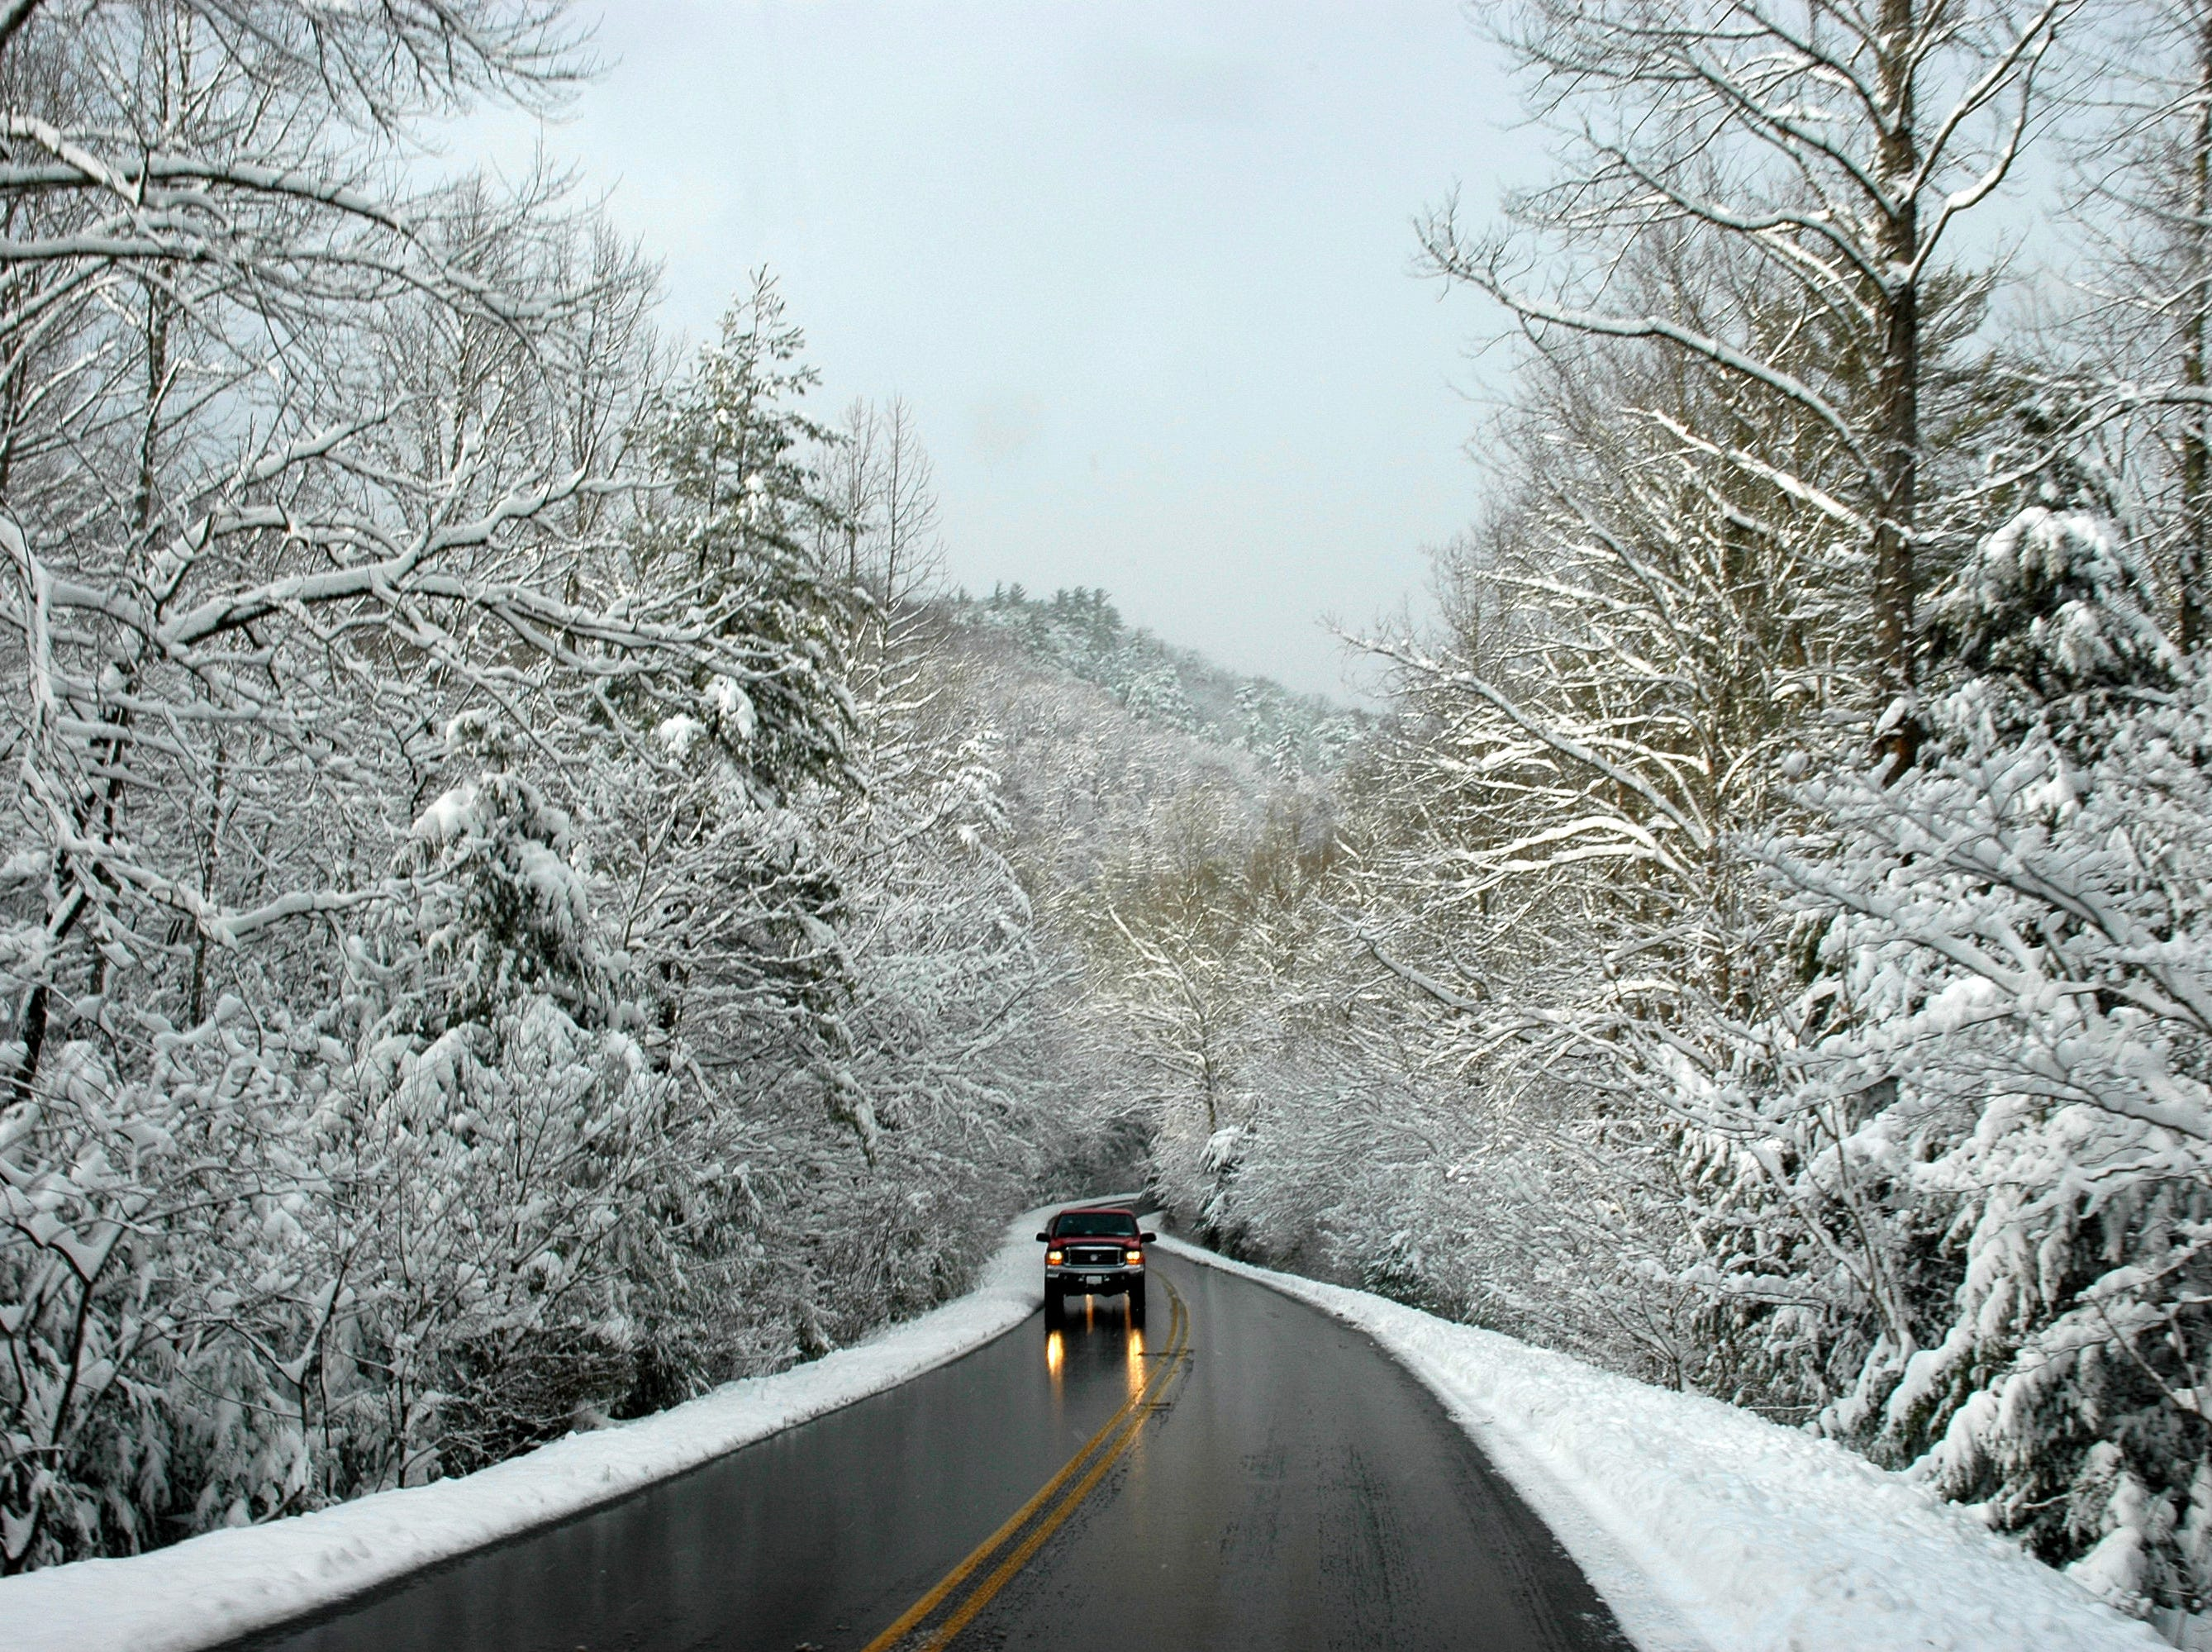 The tree branches on the road to Cades Cove were hung with a think layer of snow Sunday afternoon as funseekers came to the Great Smoky Mountains National Park to enjoy the beauty and play in the snow. 2006 Robert Wilson